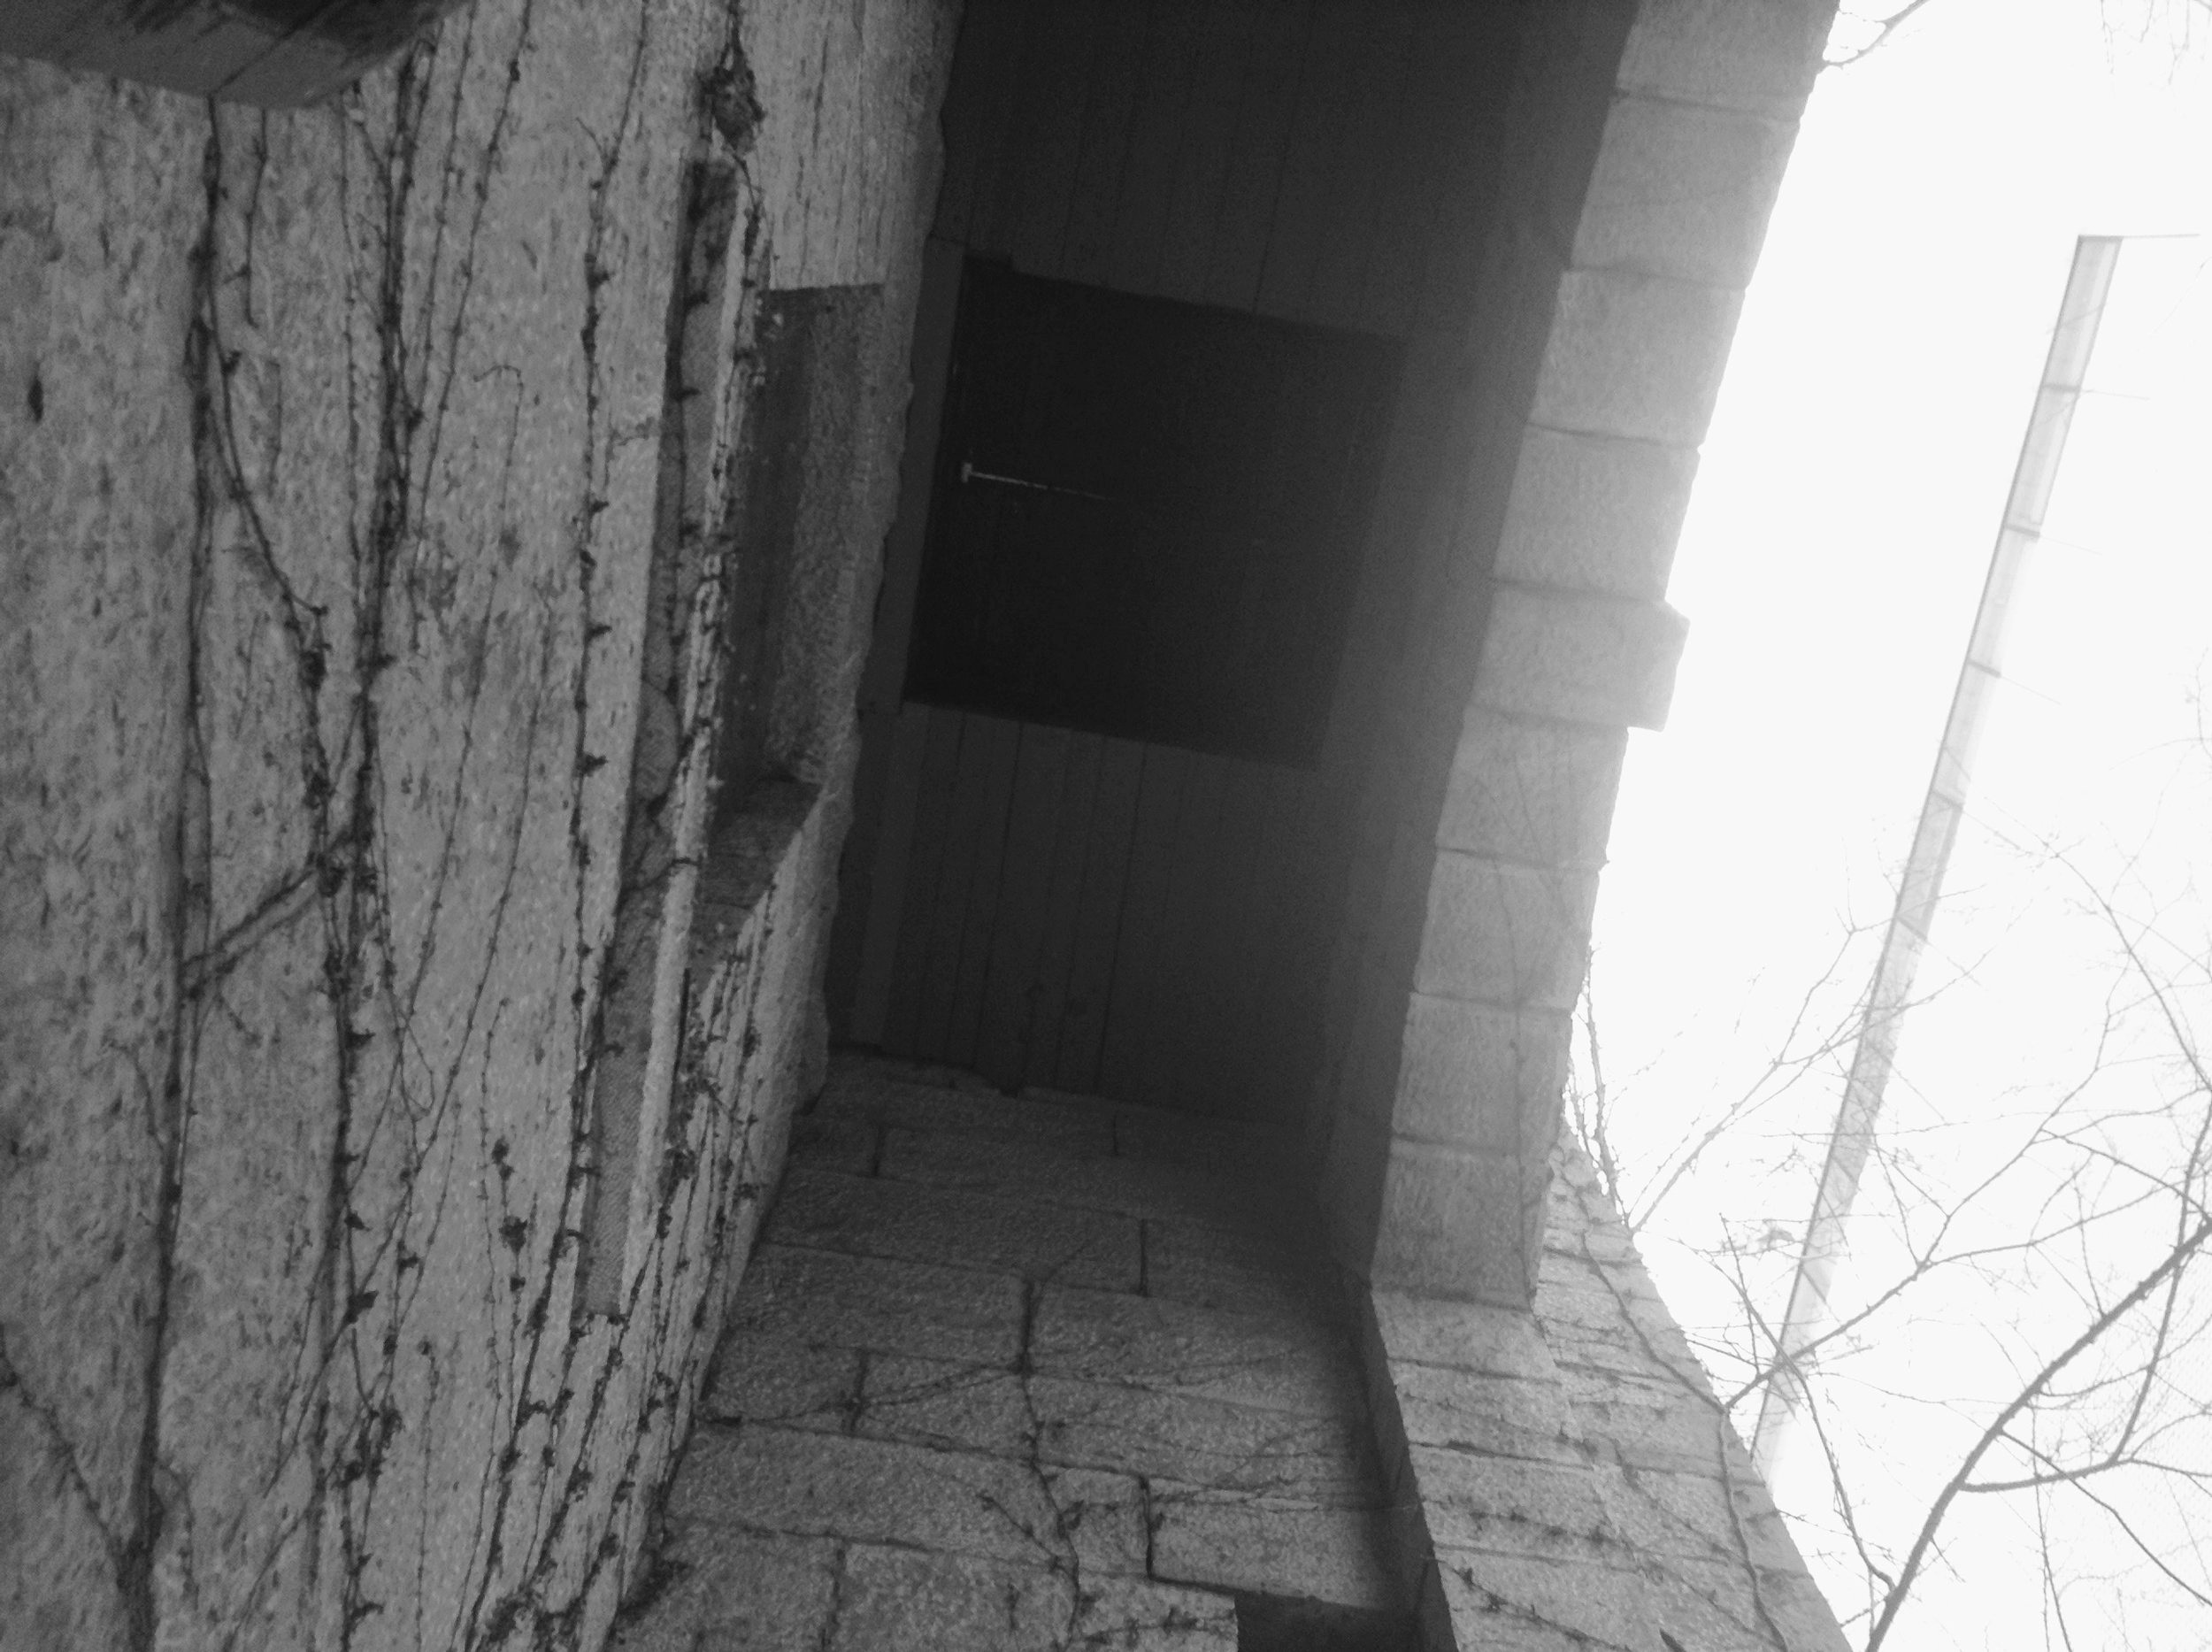 Looking up at the Gallows trapdoor.